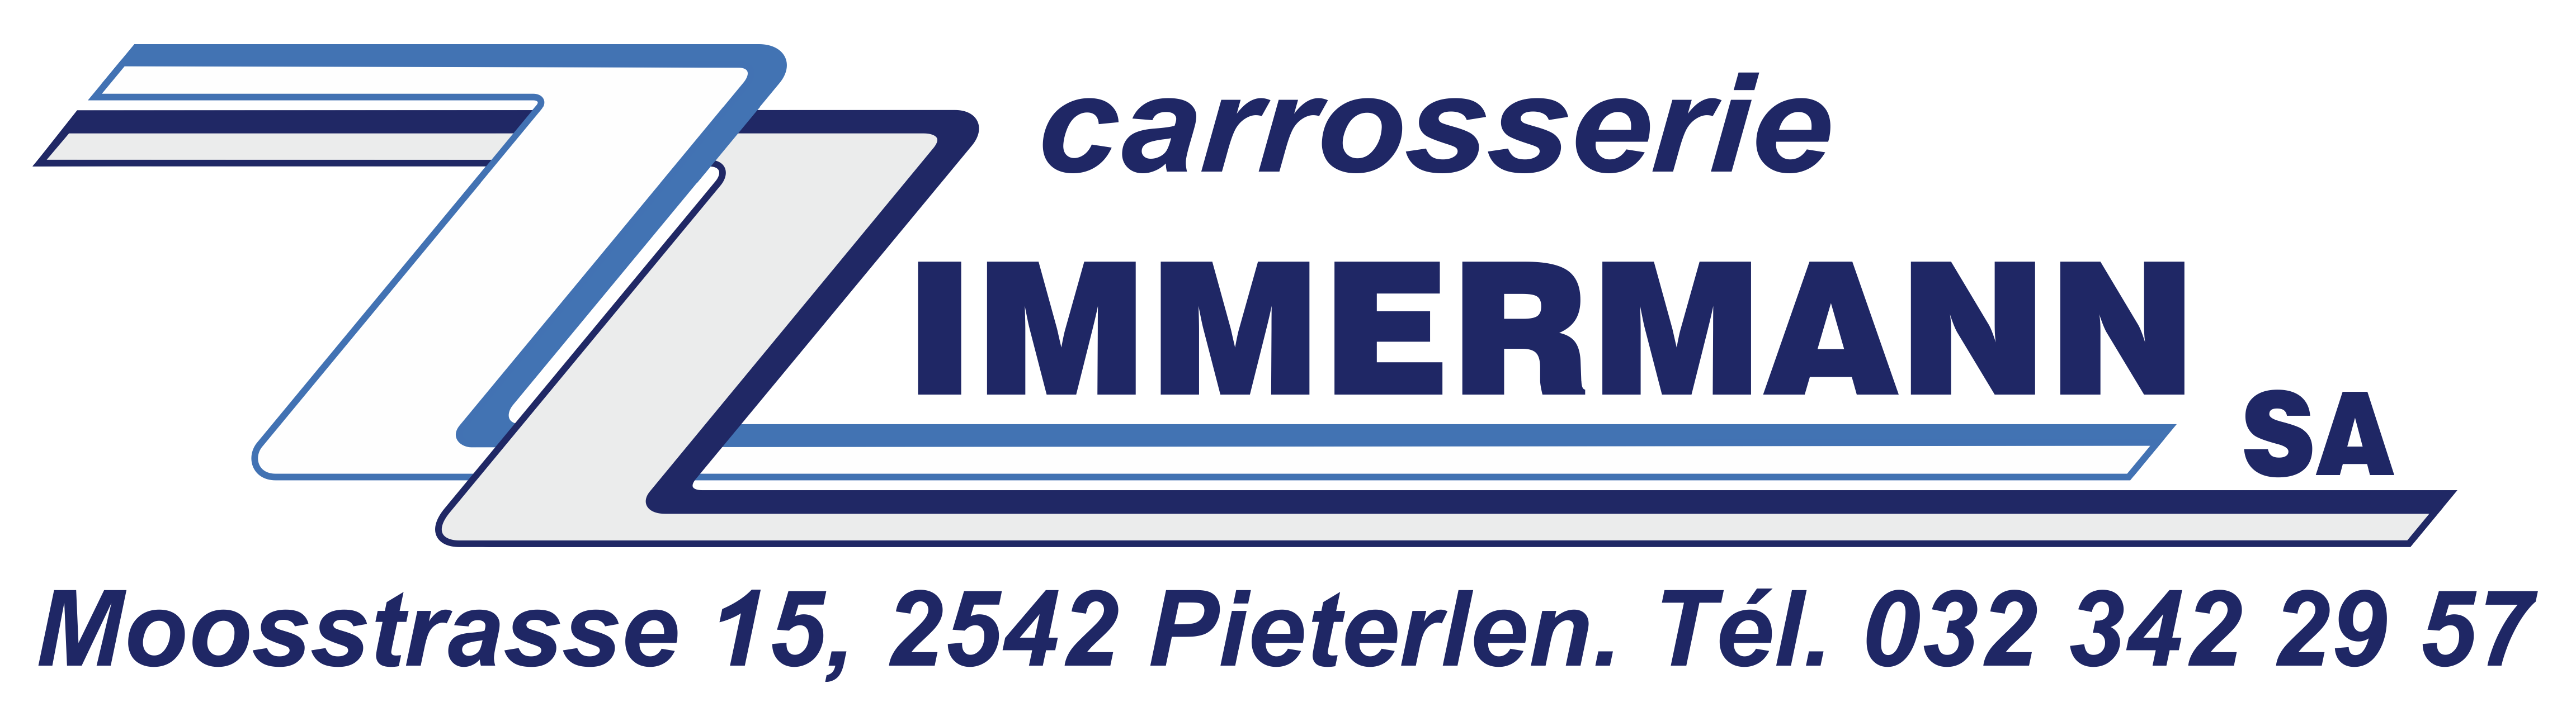 Carrosserie Zimmermann SA